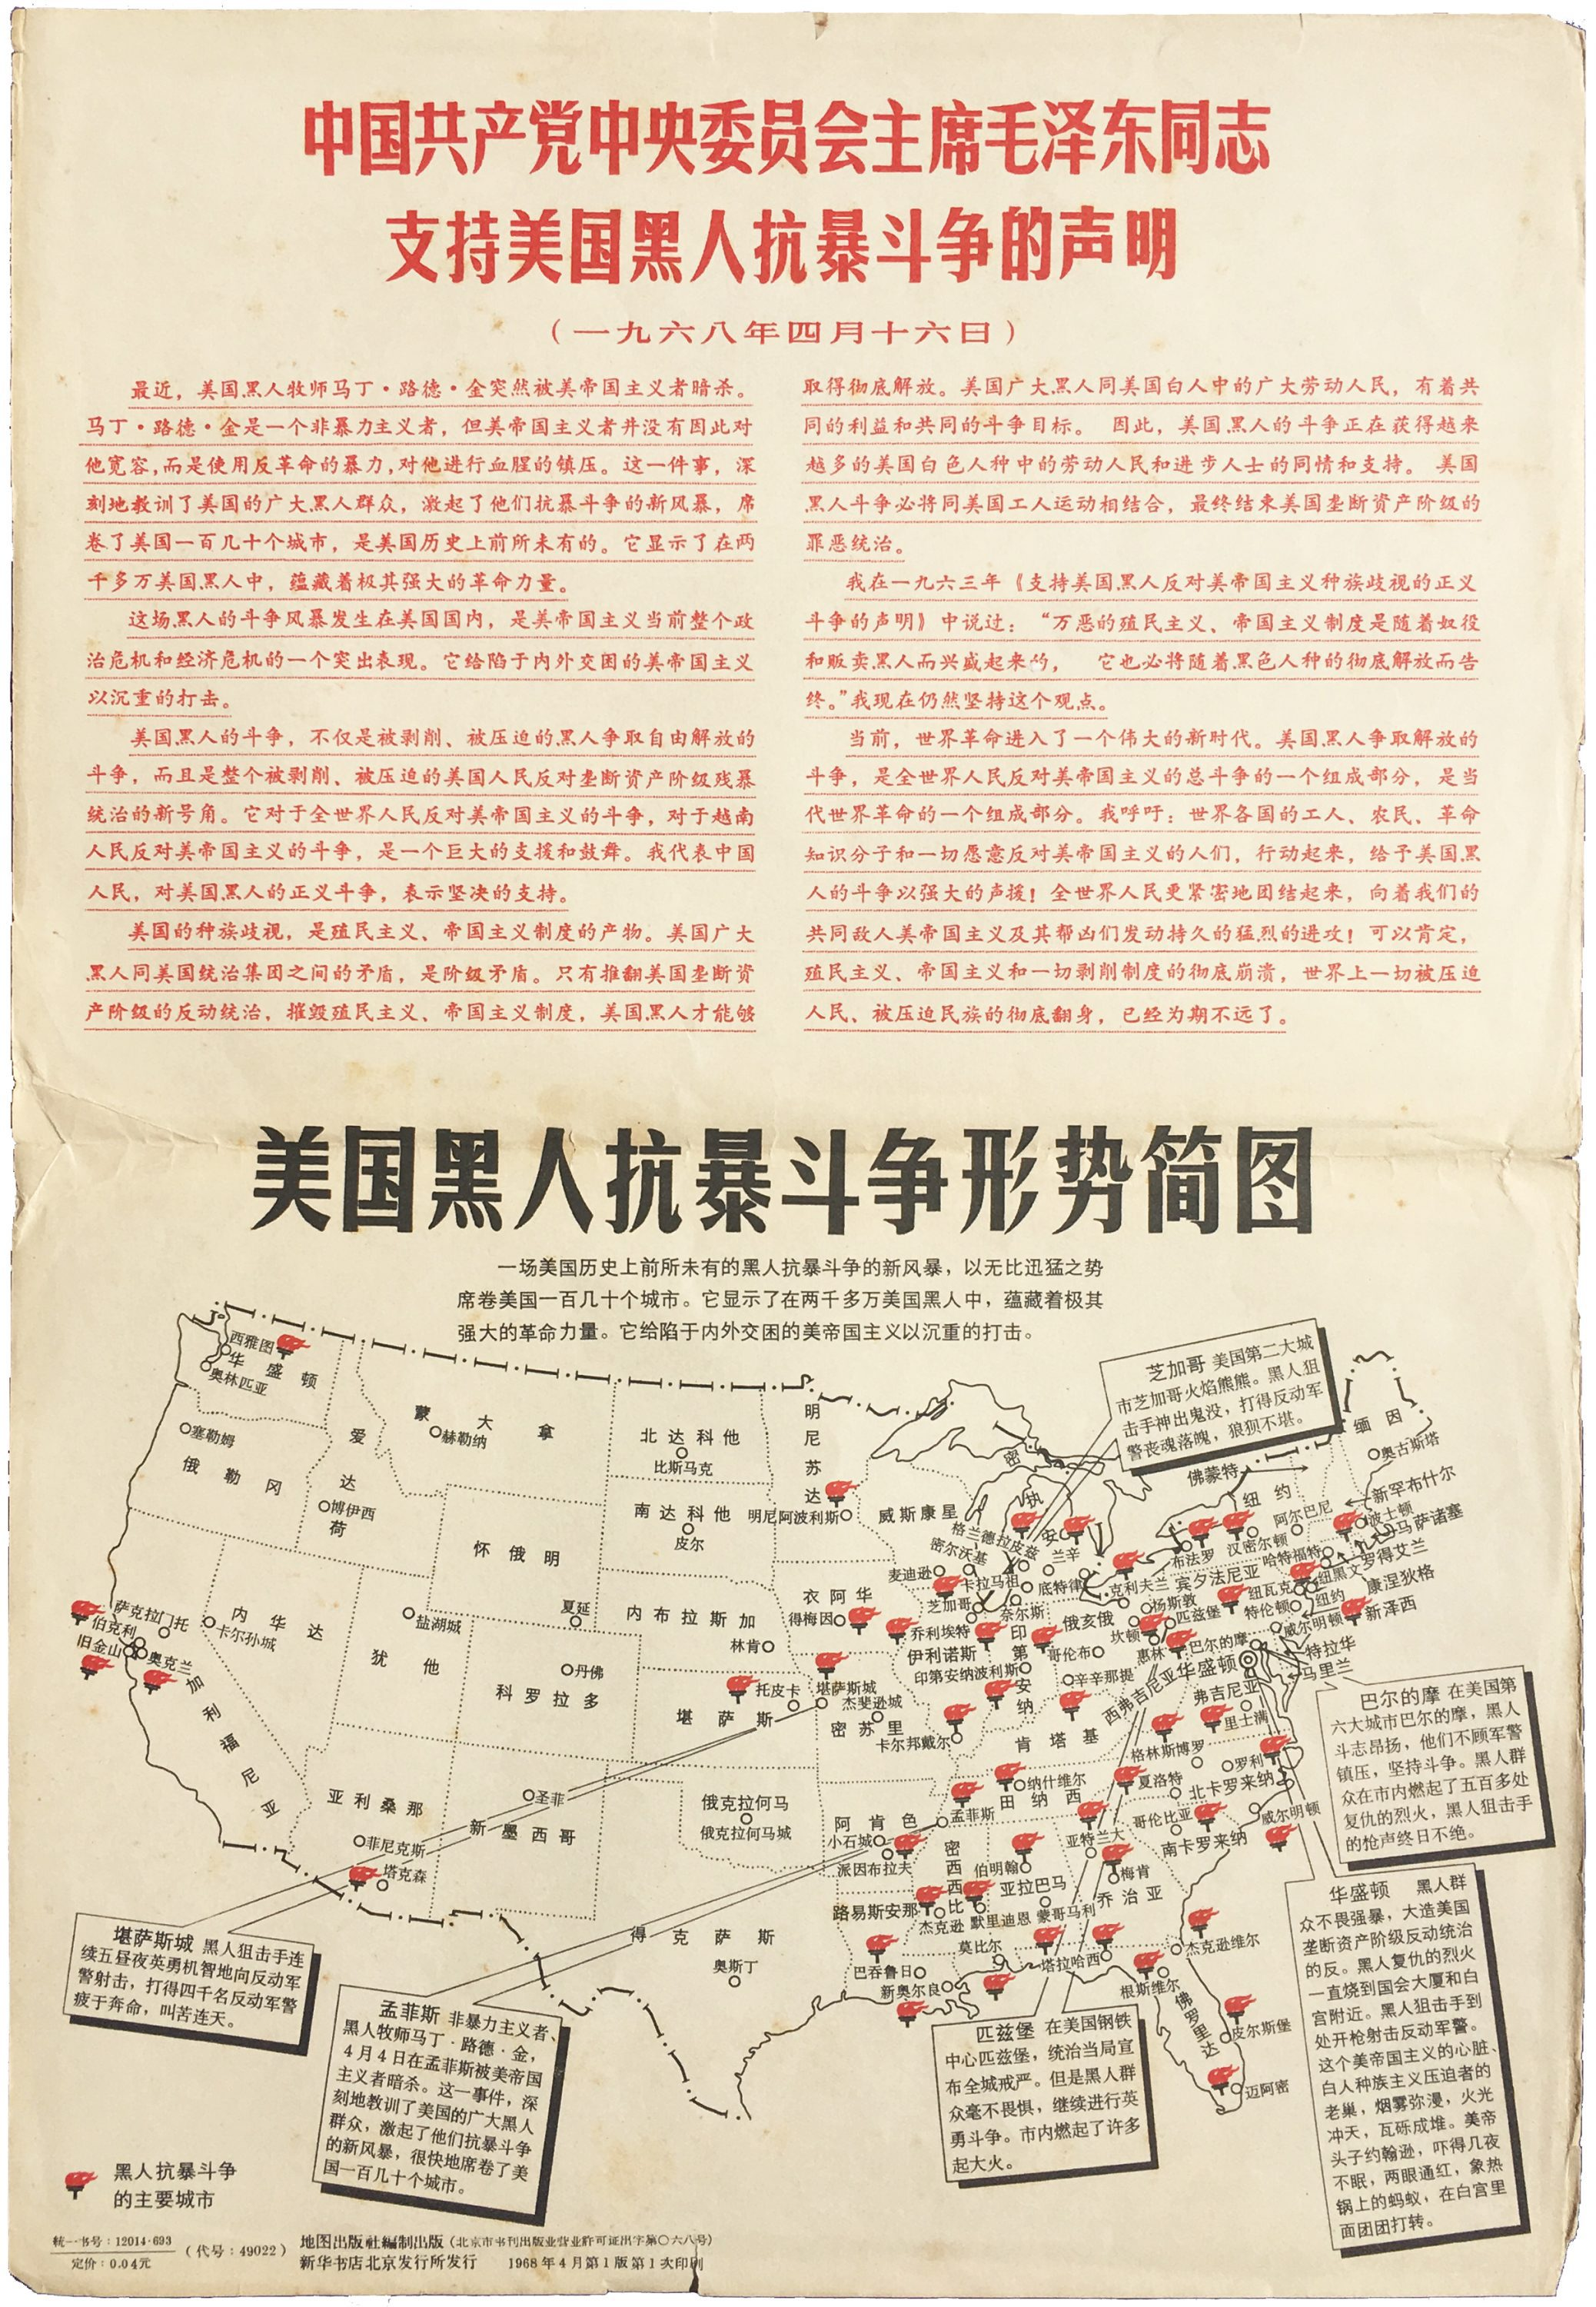 Chinese Map Of America.Mao Zedong Puts His Own Spin On Race Riots In America Rare